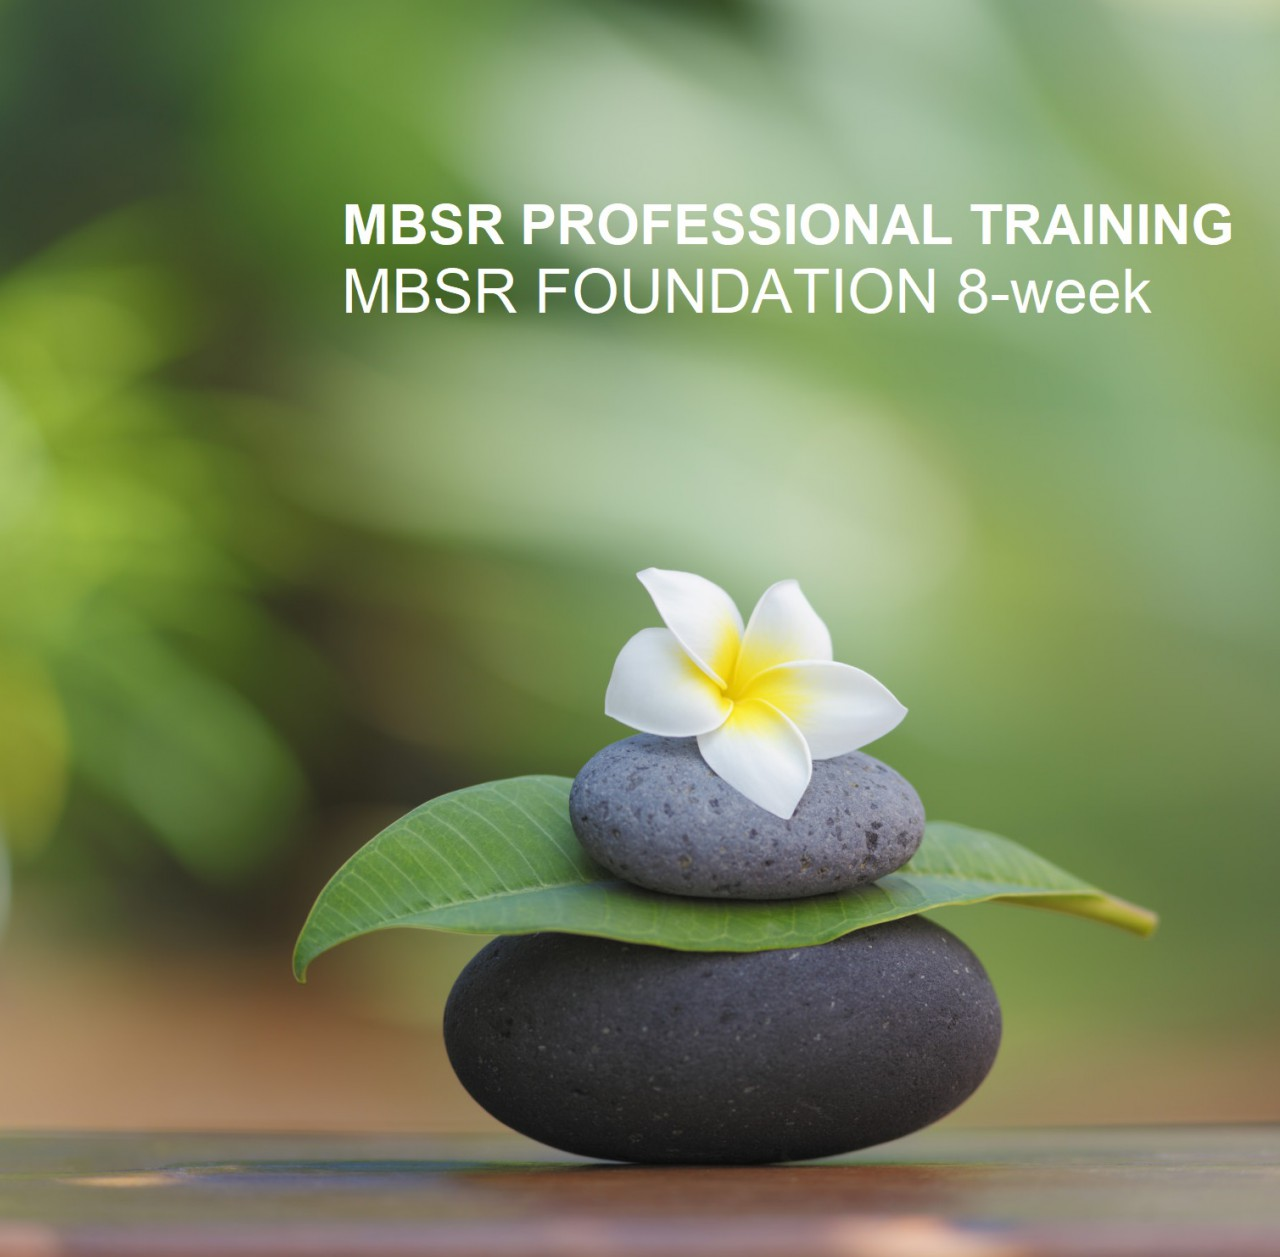 MBSR_TRAINING_FOUNDATION_8-WEEK.jpg